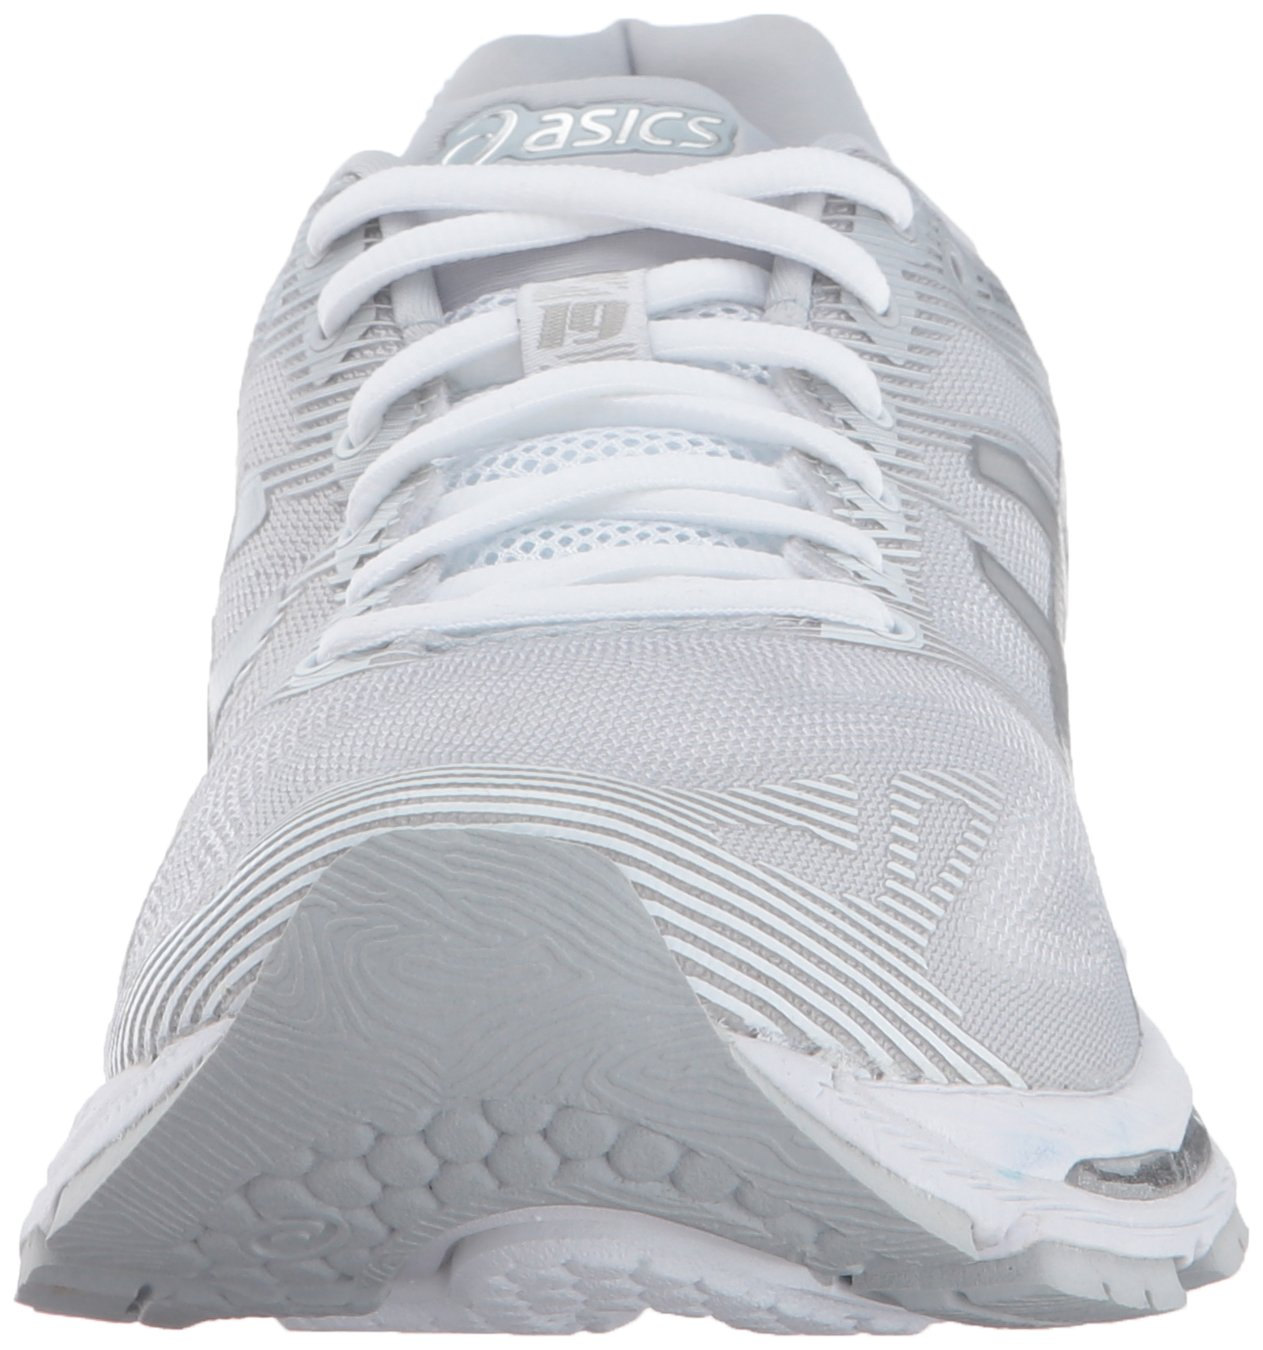 info for 46314 bd11f ASICS Womens Gel-Nimbus 19 Running Shoe, Glacier Grey/Silver ...